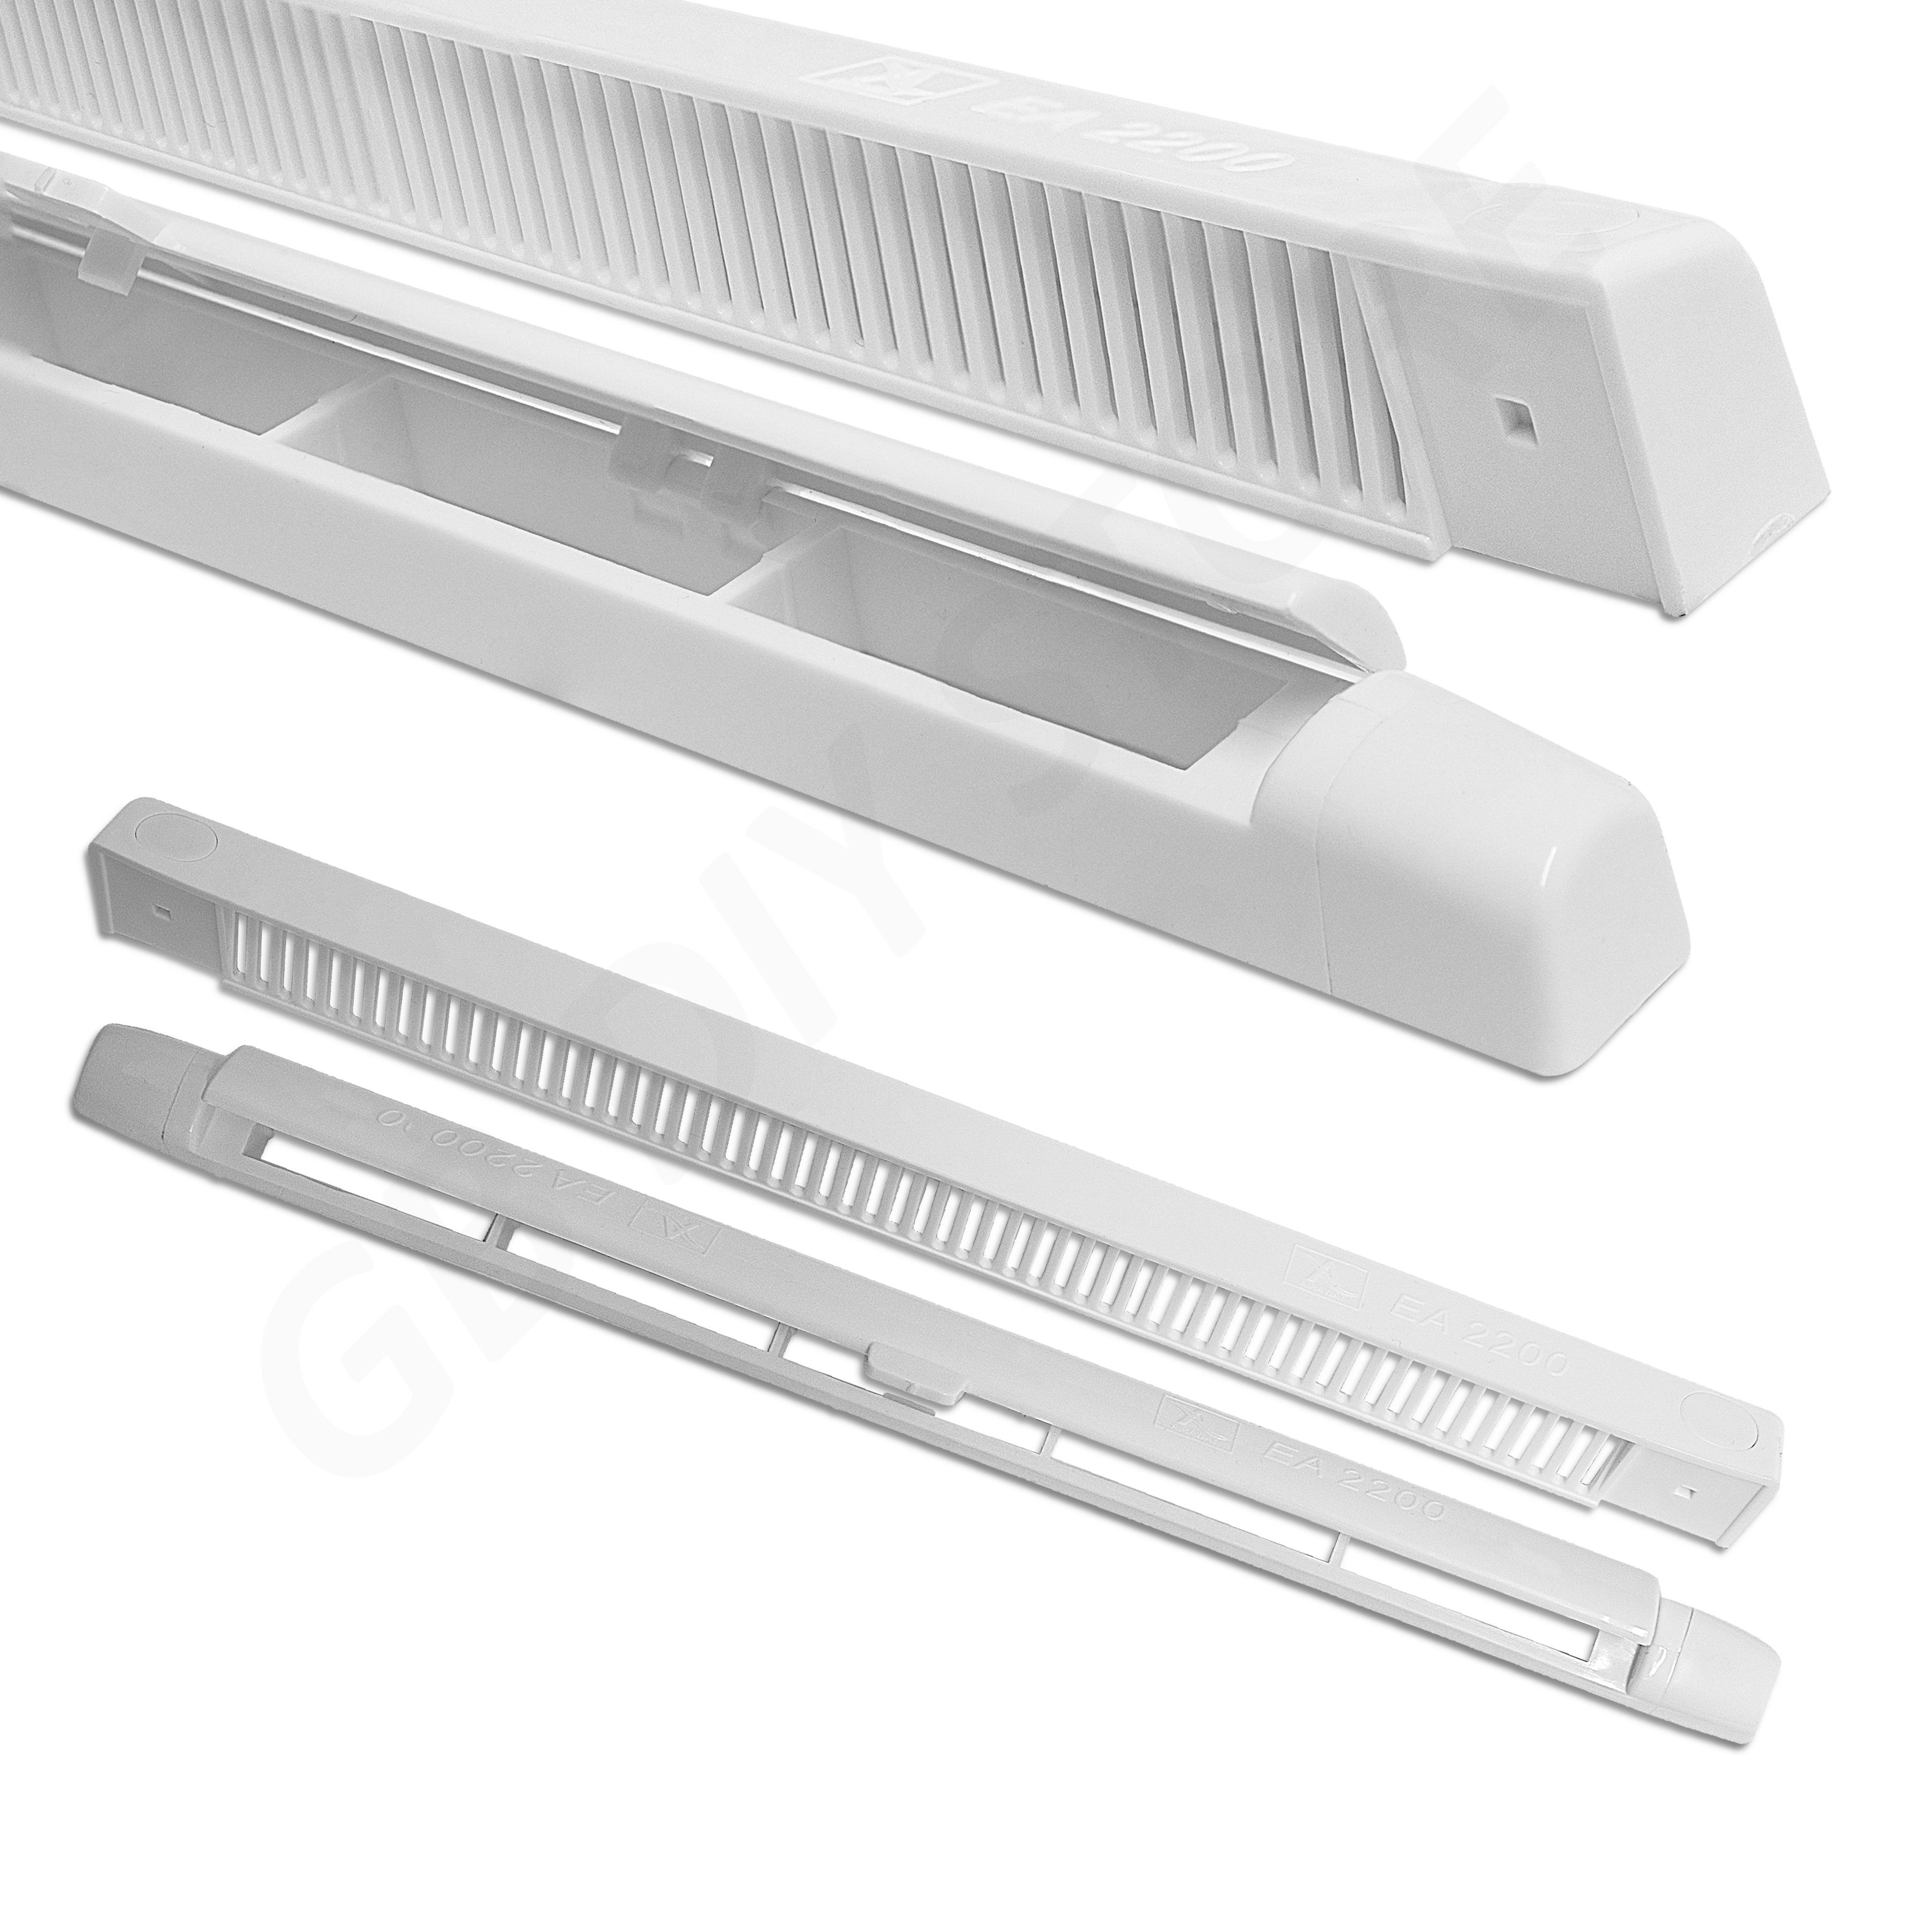 Double Glazed Ventilation : Trickle slot vent for upvc double glazing window reduces